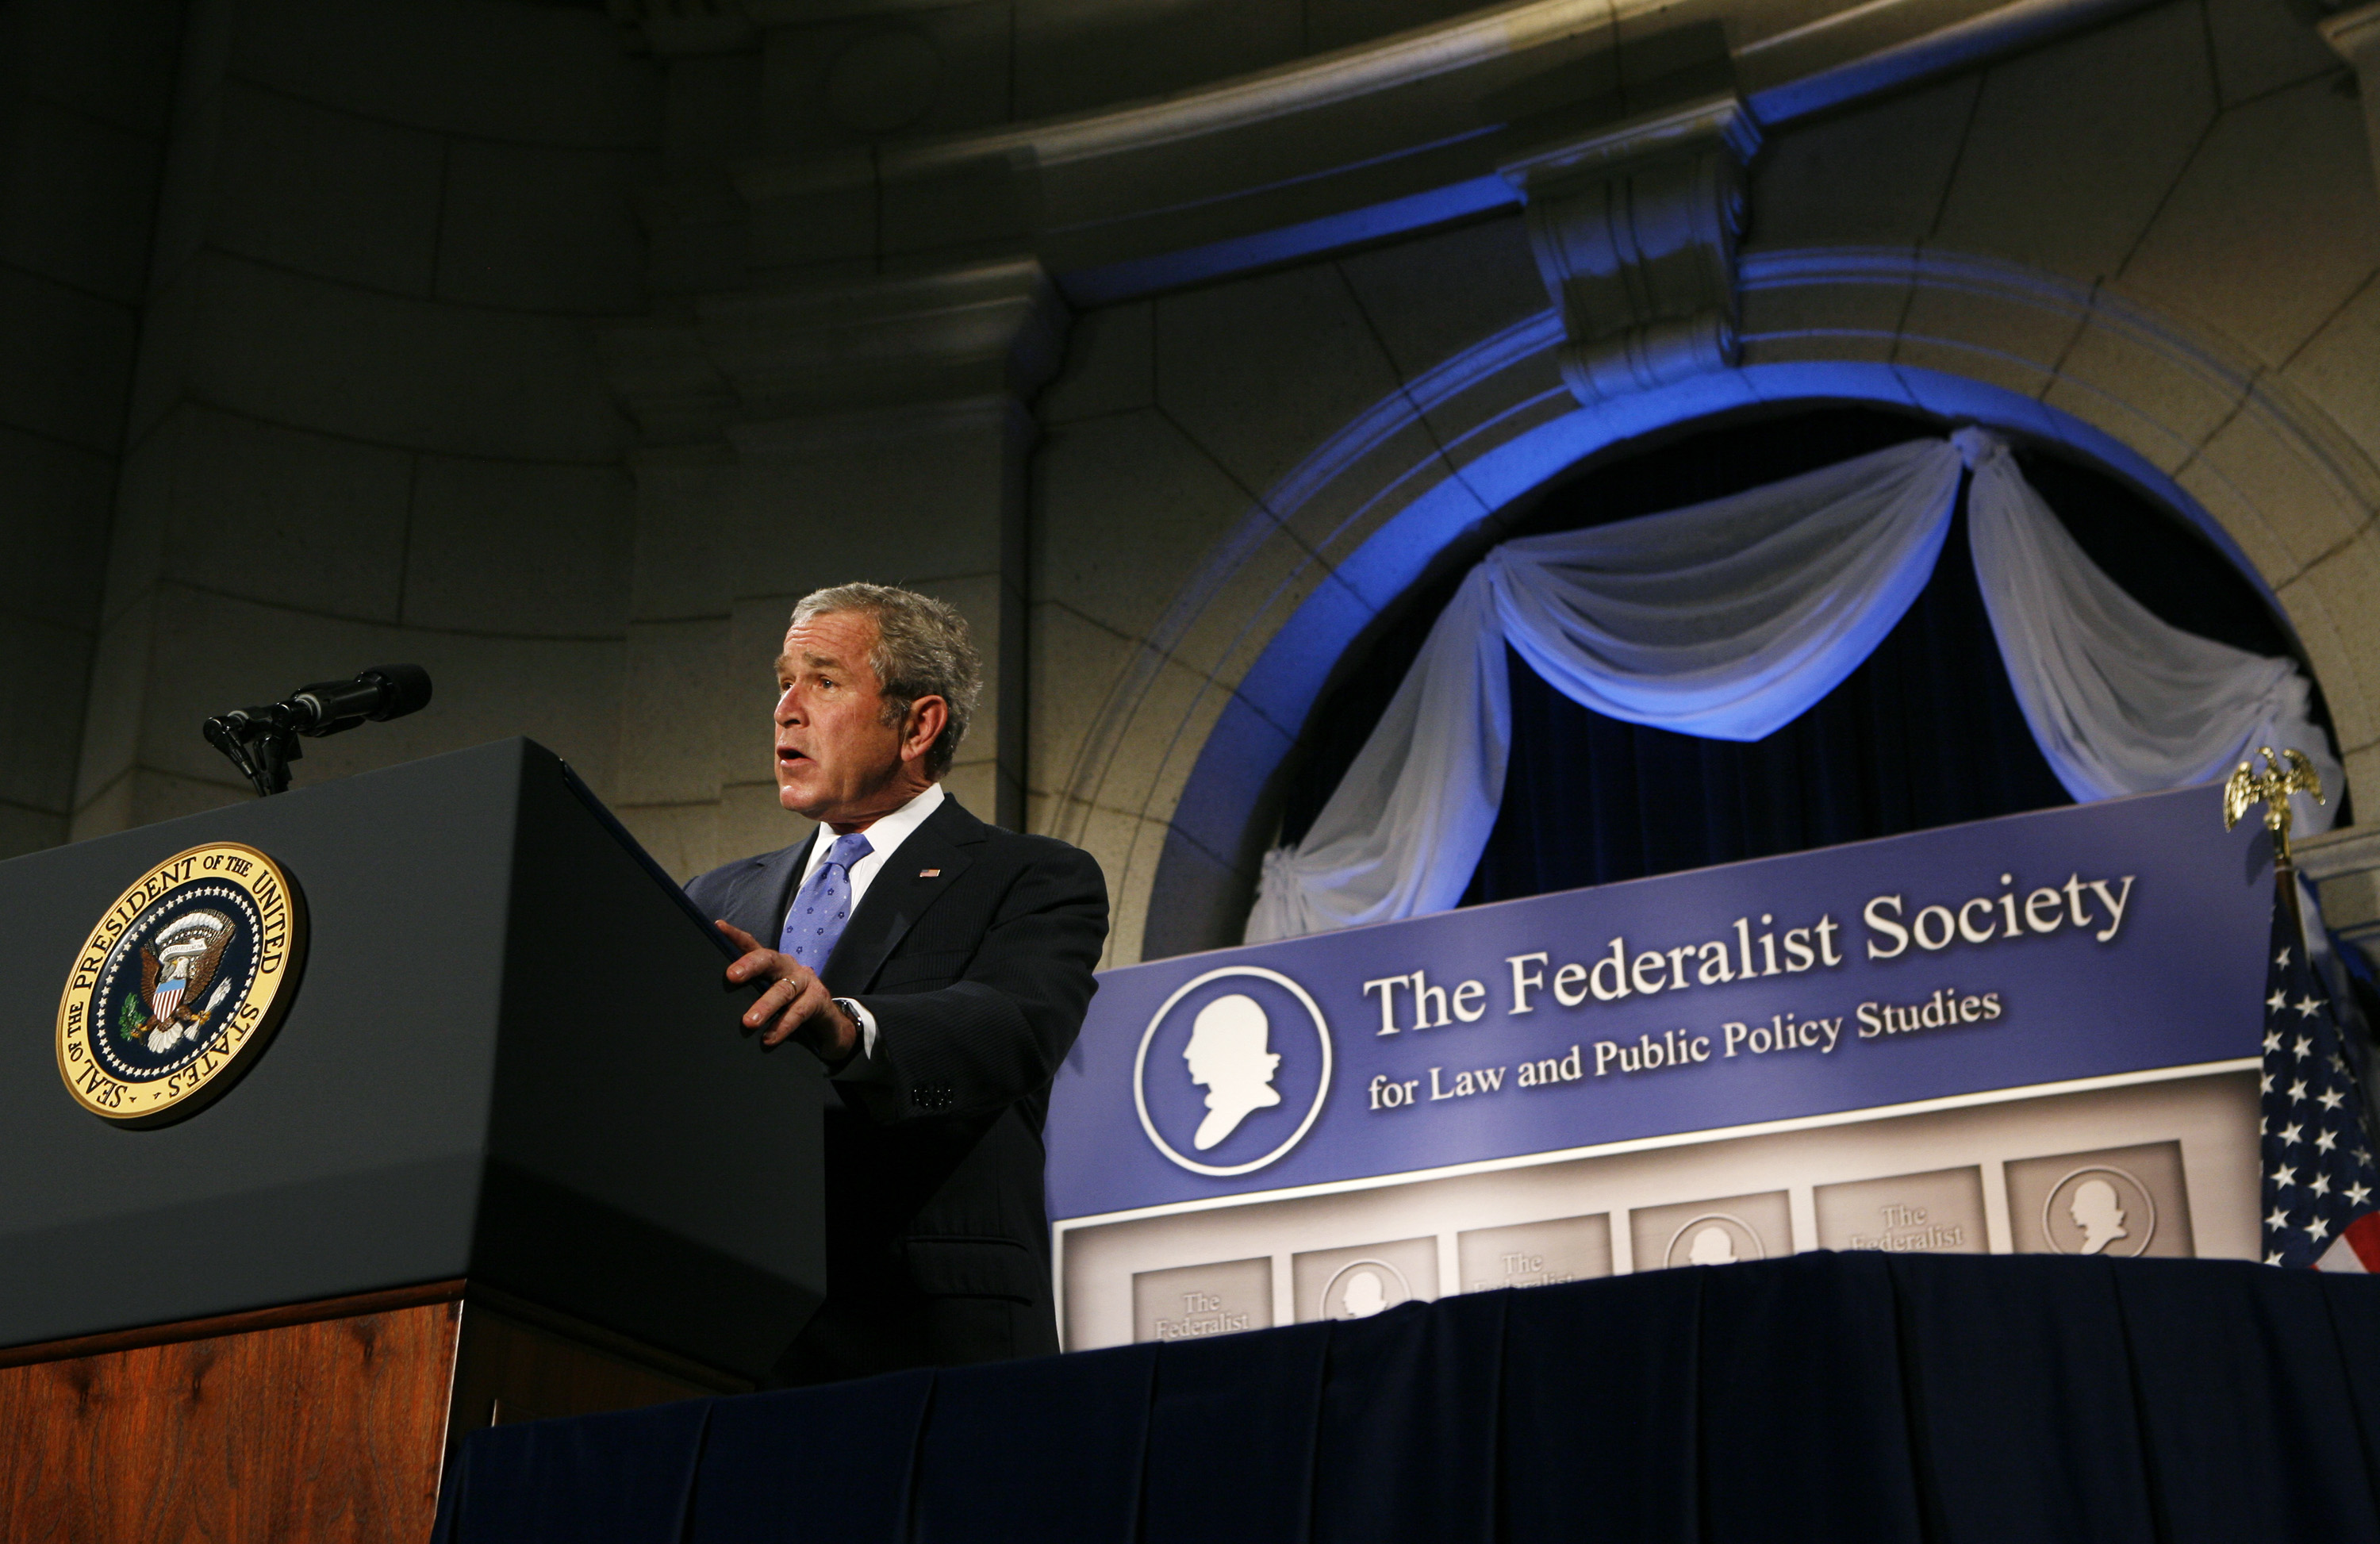 George W. Bush speaking before the Federalist Society while still president in 2007.